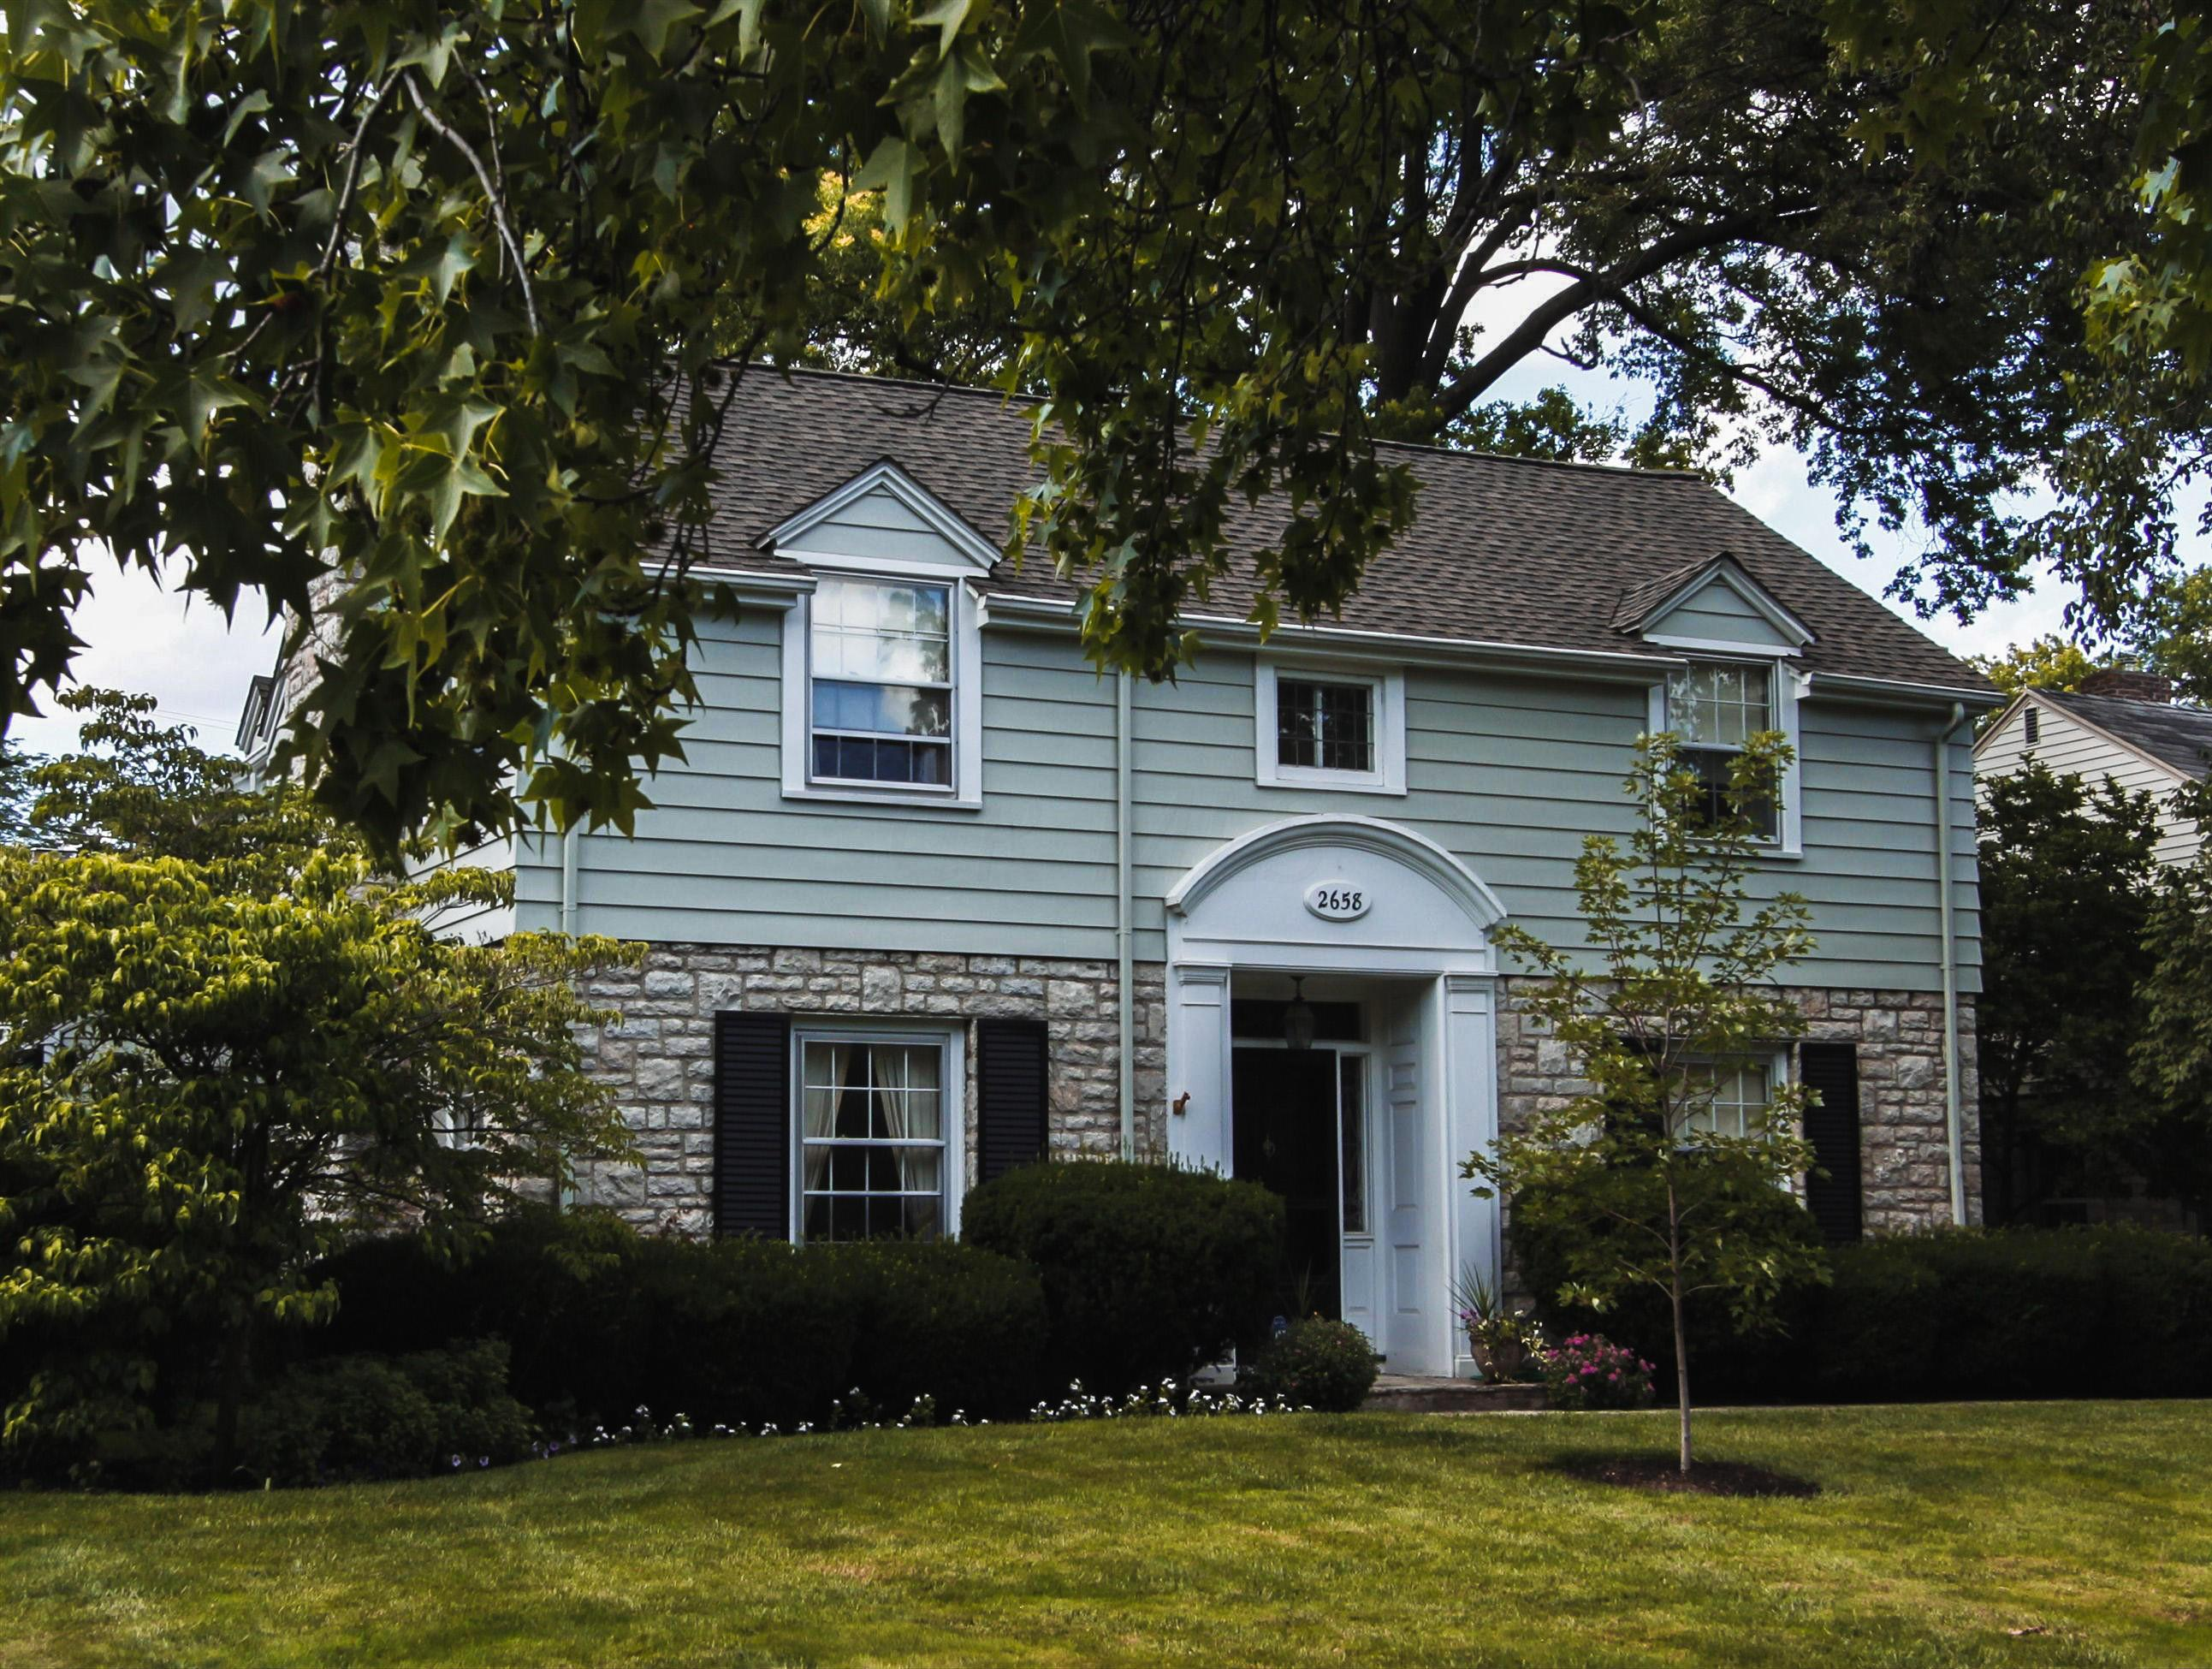 Photo of 2658 Bryden Road, Bexley, OH 43209